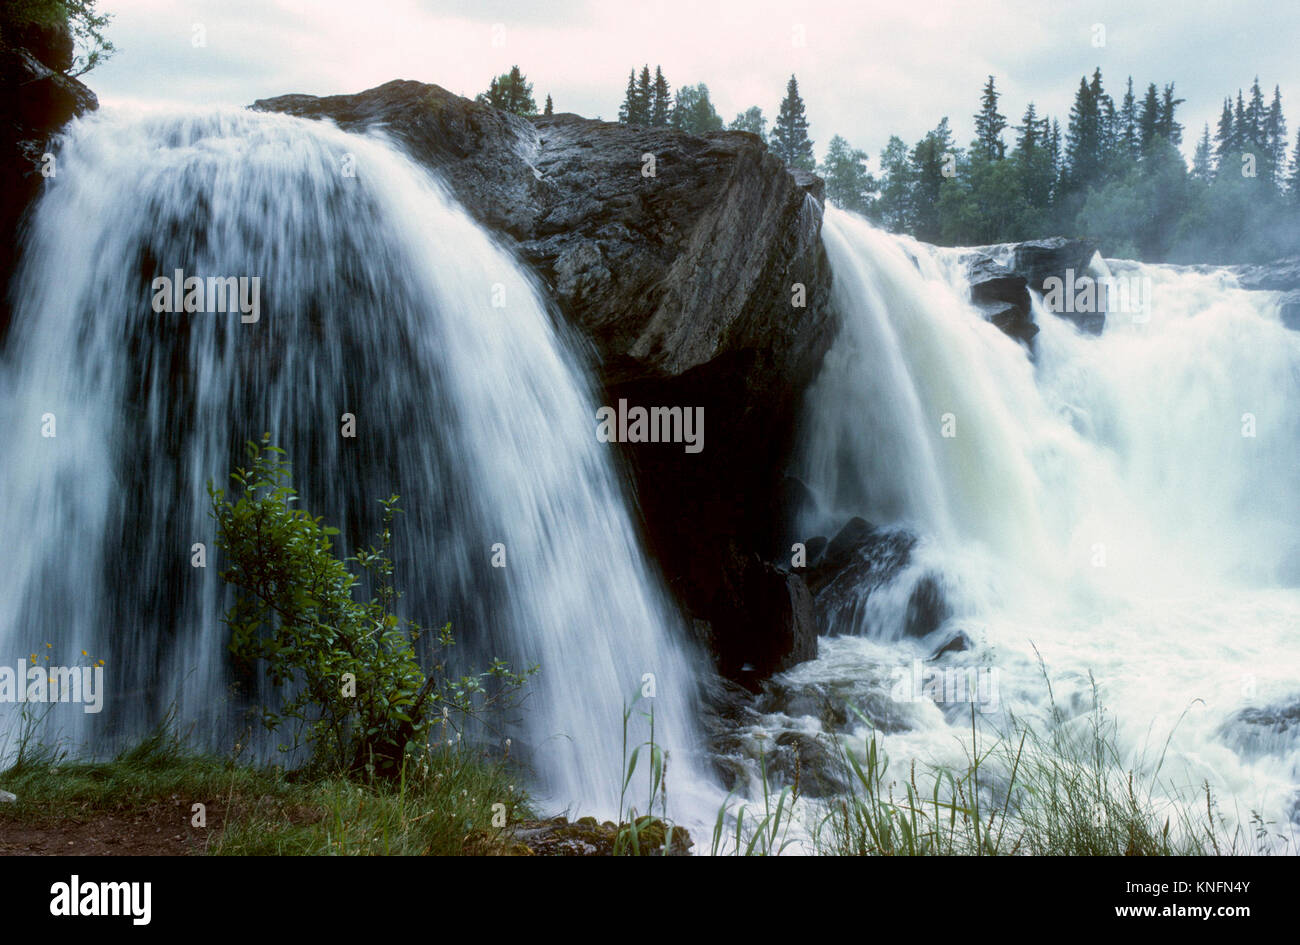 RISTAFALLET in Swedish Jämtland one of great waterfall in Sweden at Indalsälven 2011 - Stock Image